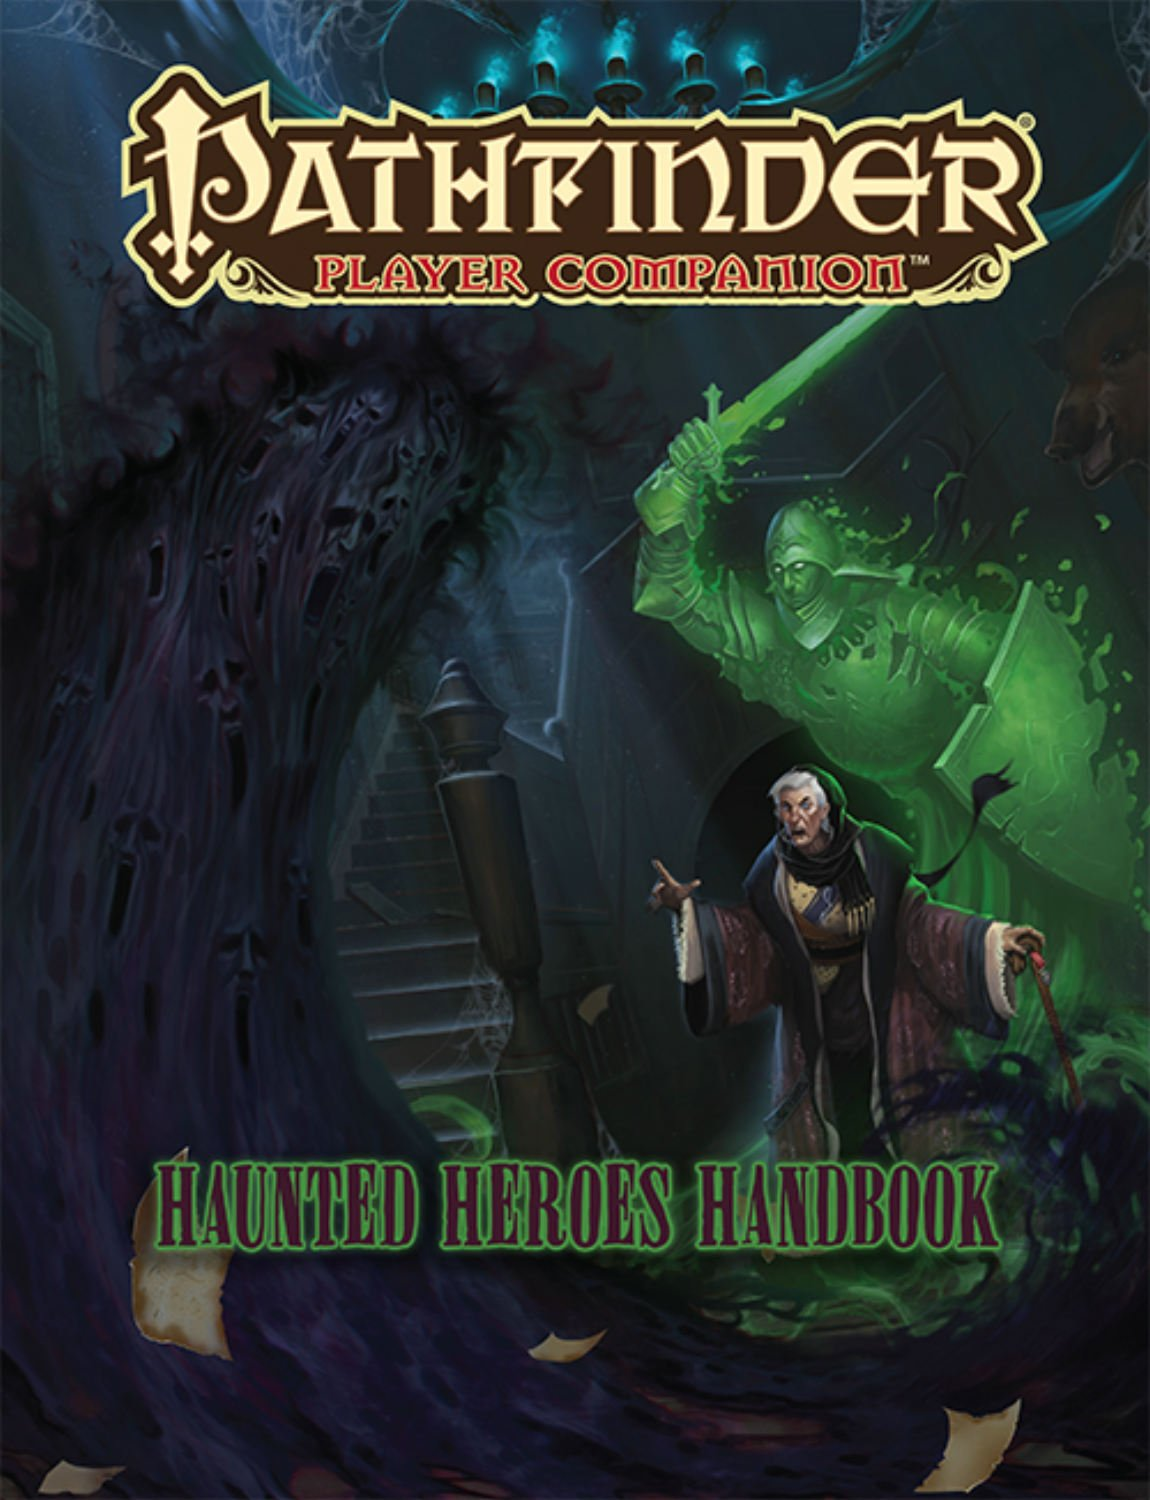 Pathfinder Player Companion: Haunted Heroes Handbook: Paizo Staff:  9781601258847: Amazon.com: Books